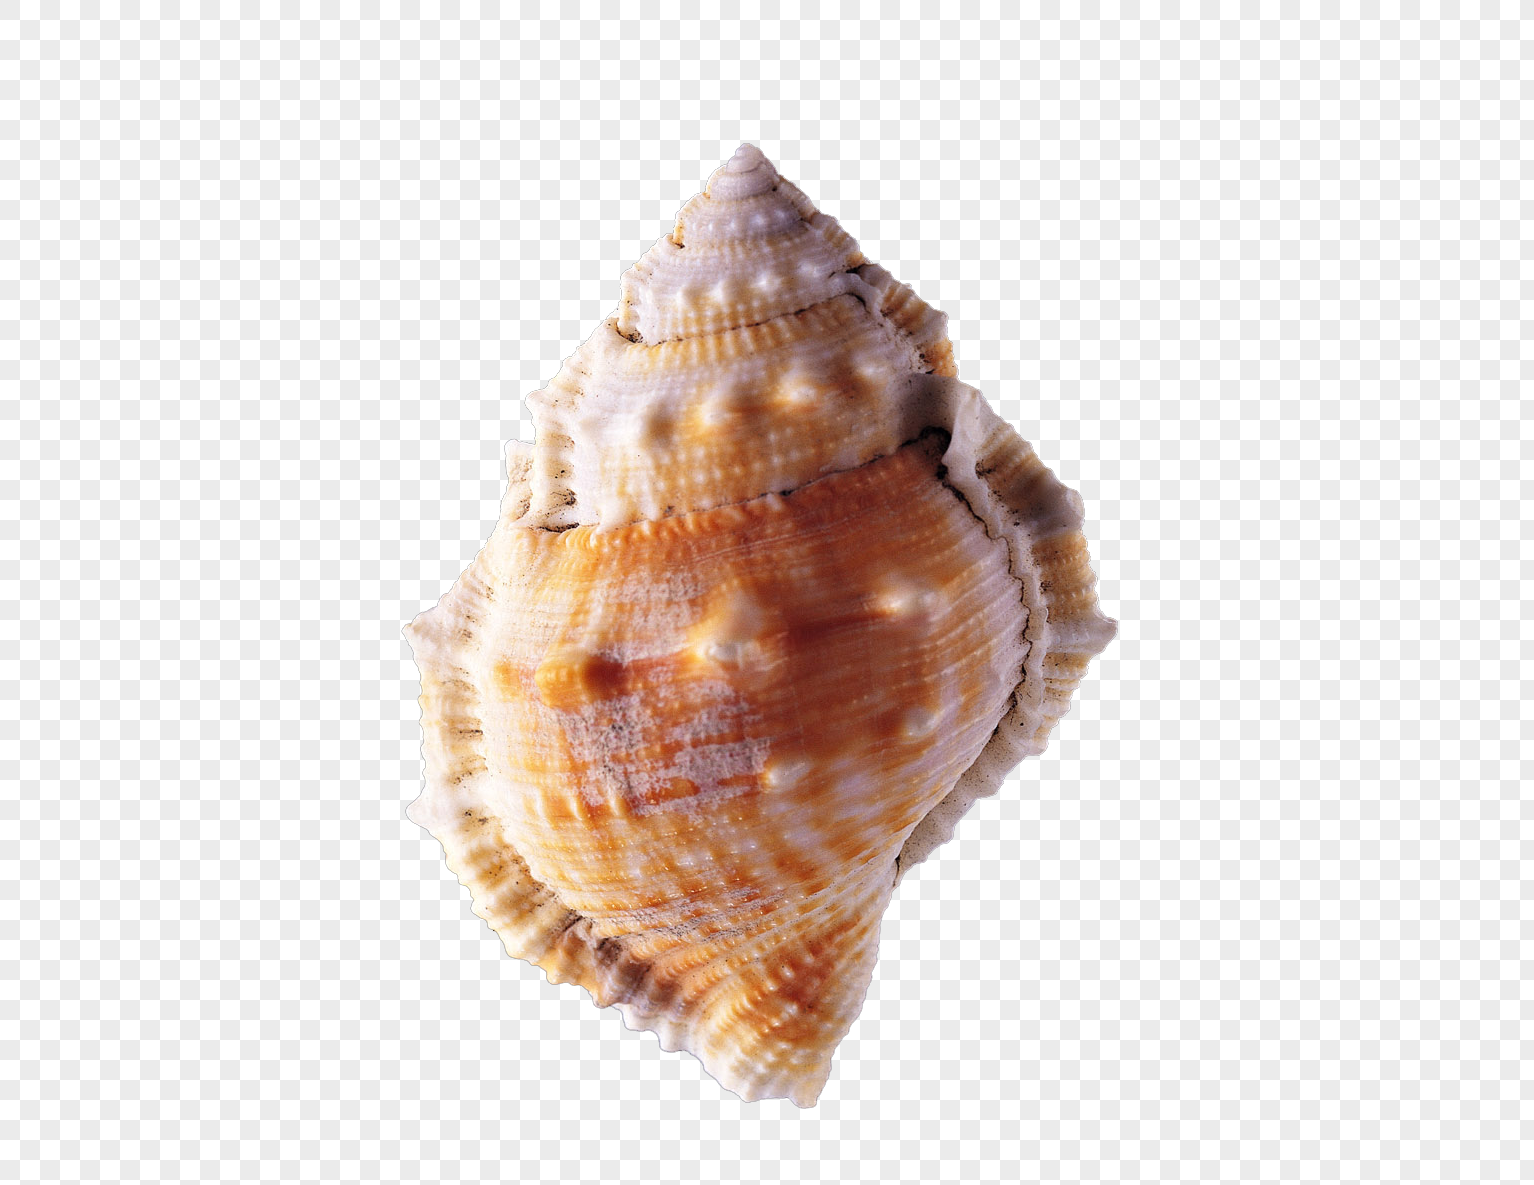 High Resolution Conch Png Clipart image #48548